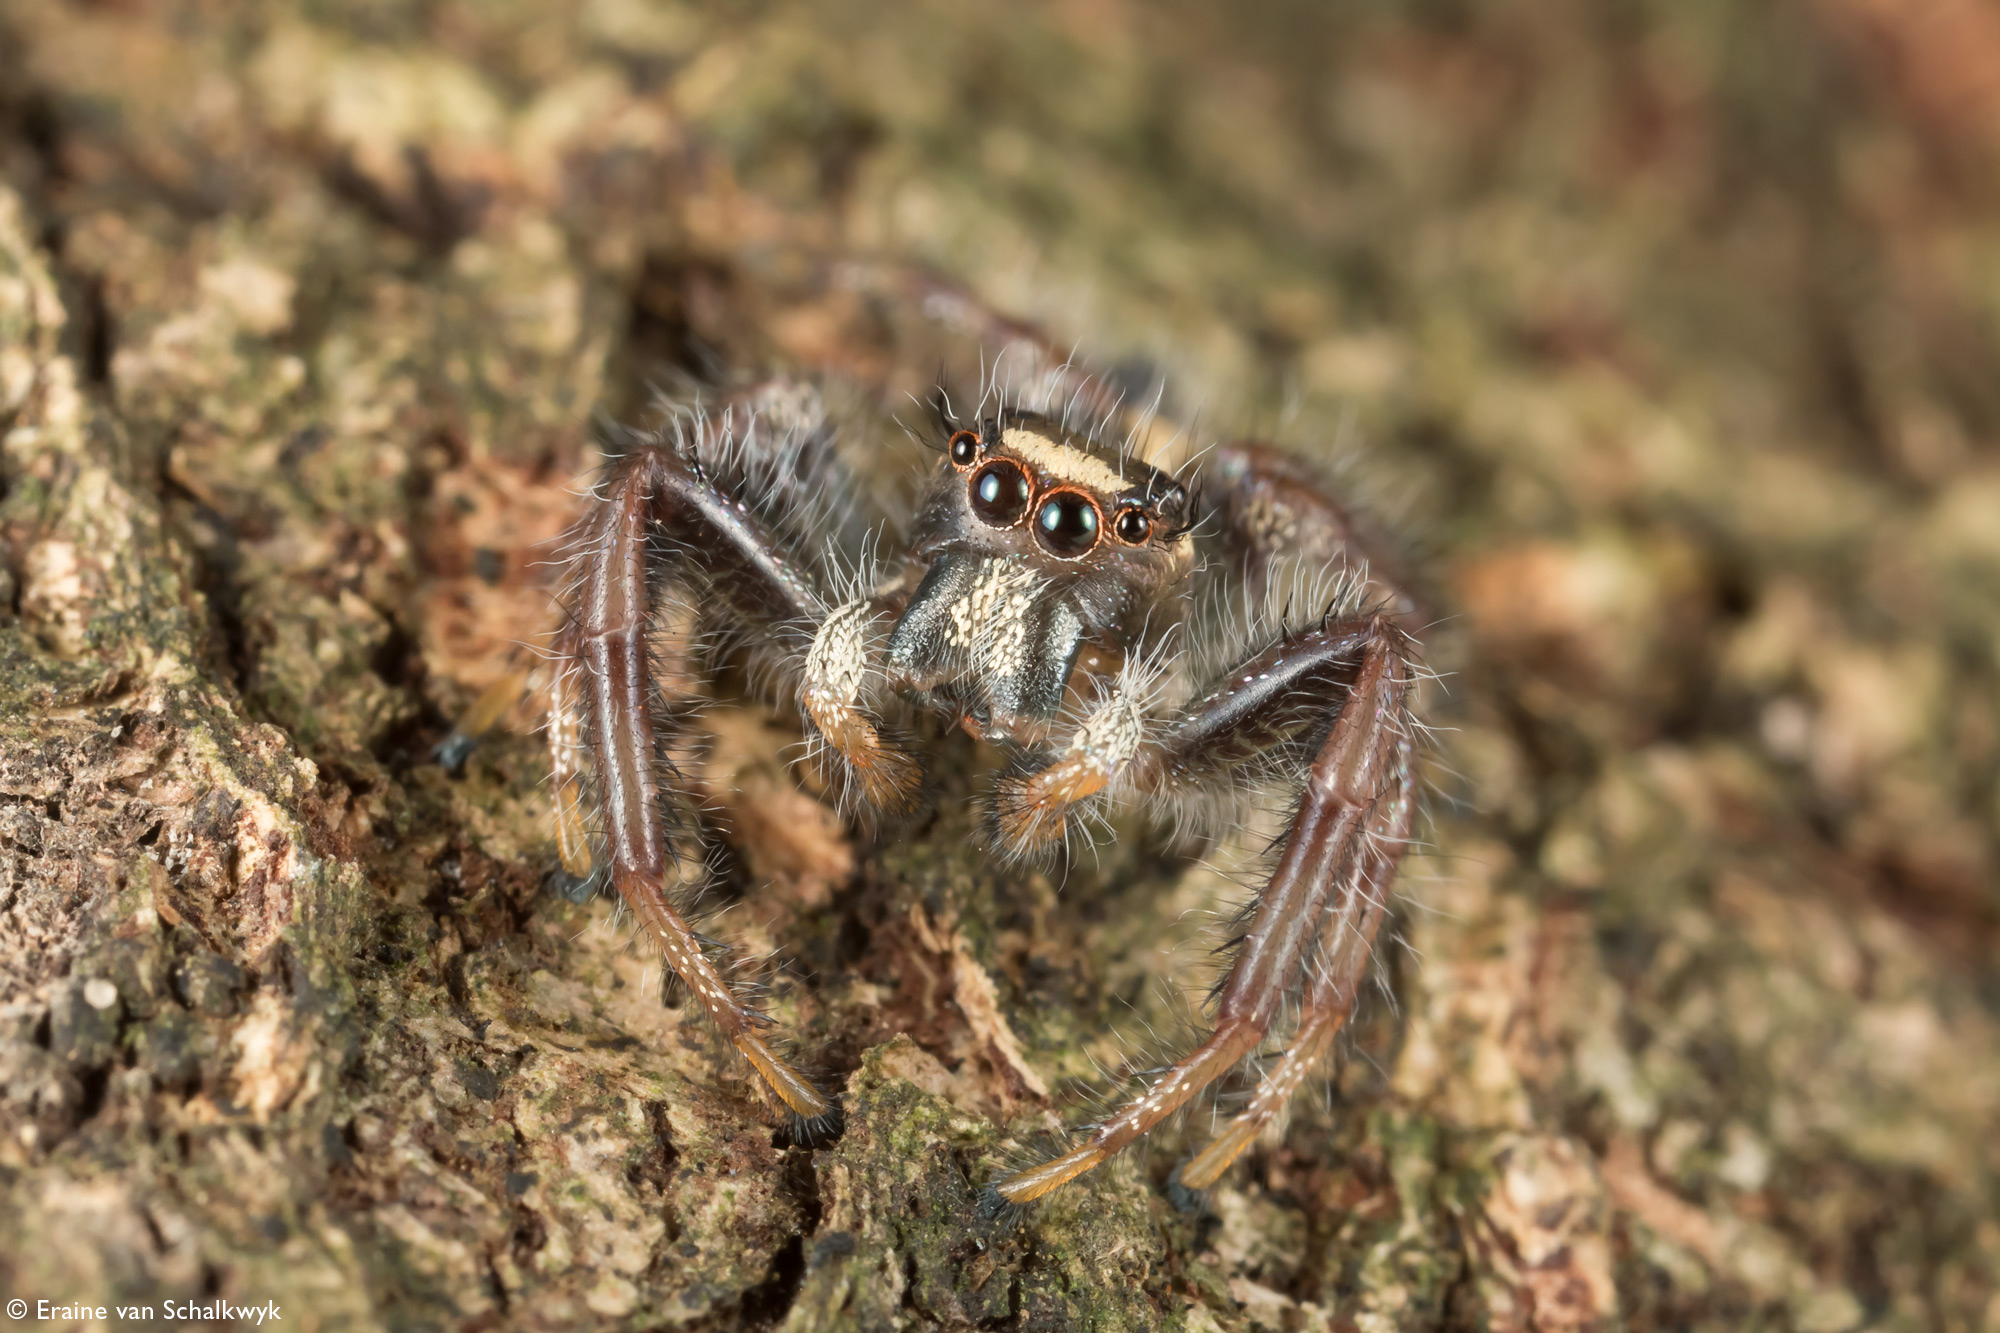 Jumping spider on tree trunk, arachnid, macro photography